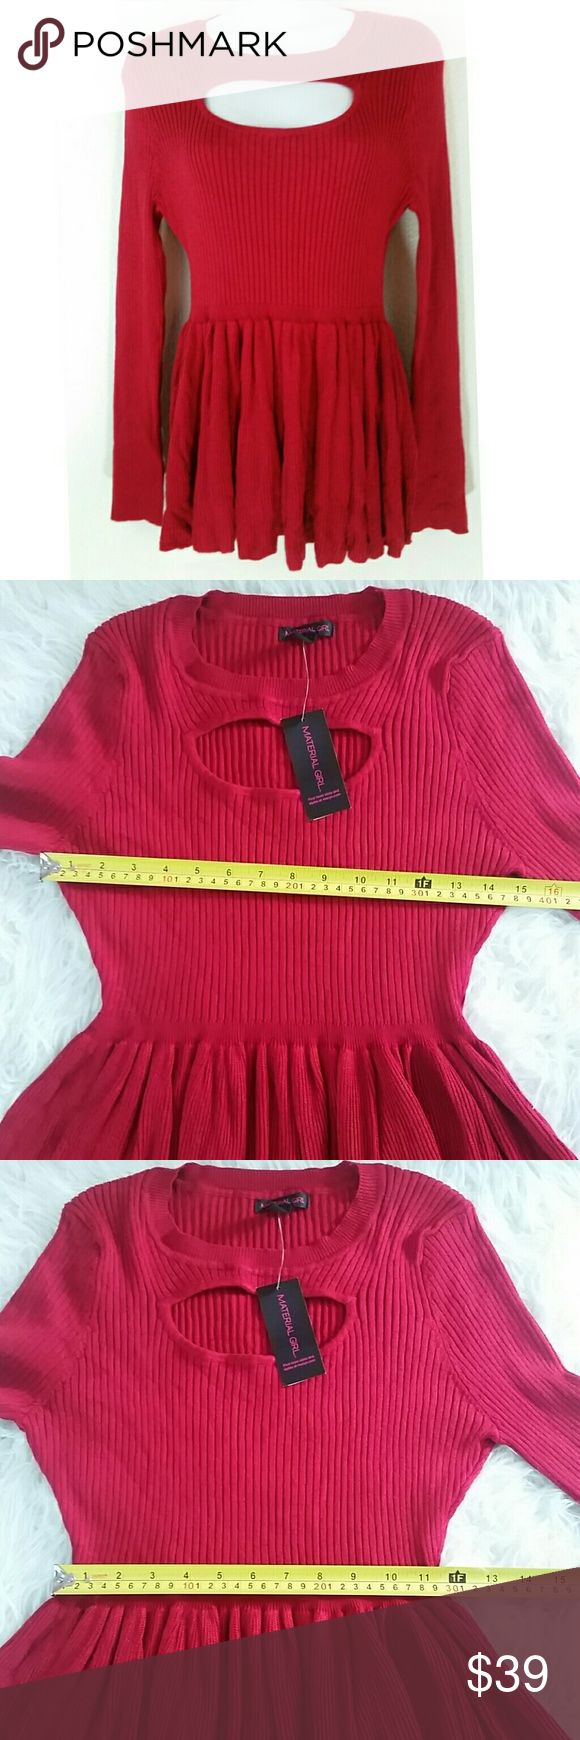 Material Girl Red Chili Pepper Peplum Keyhole Top Material Girl Red Chili Pepper Long Sleeve Peplum Keyhole Peek-a-boo Ribbed Blouse. Material Girl Tops Blouses